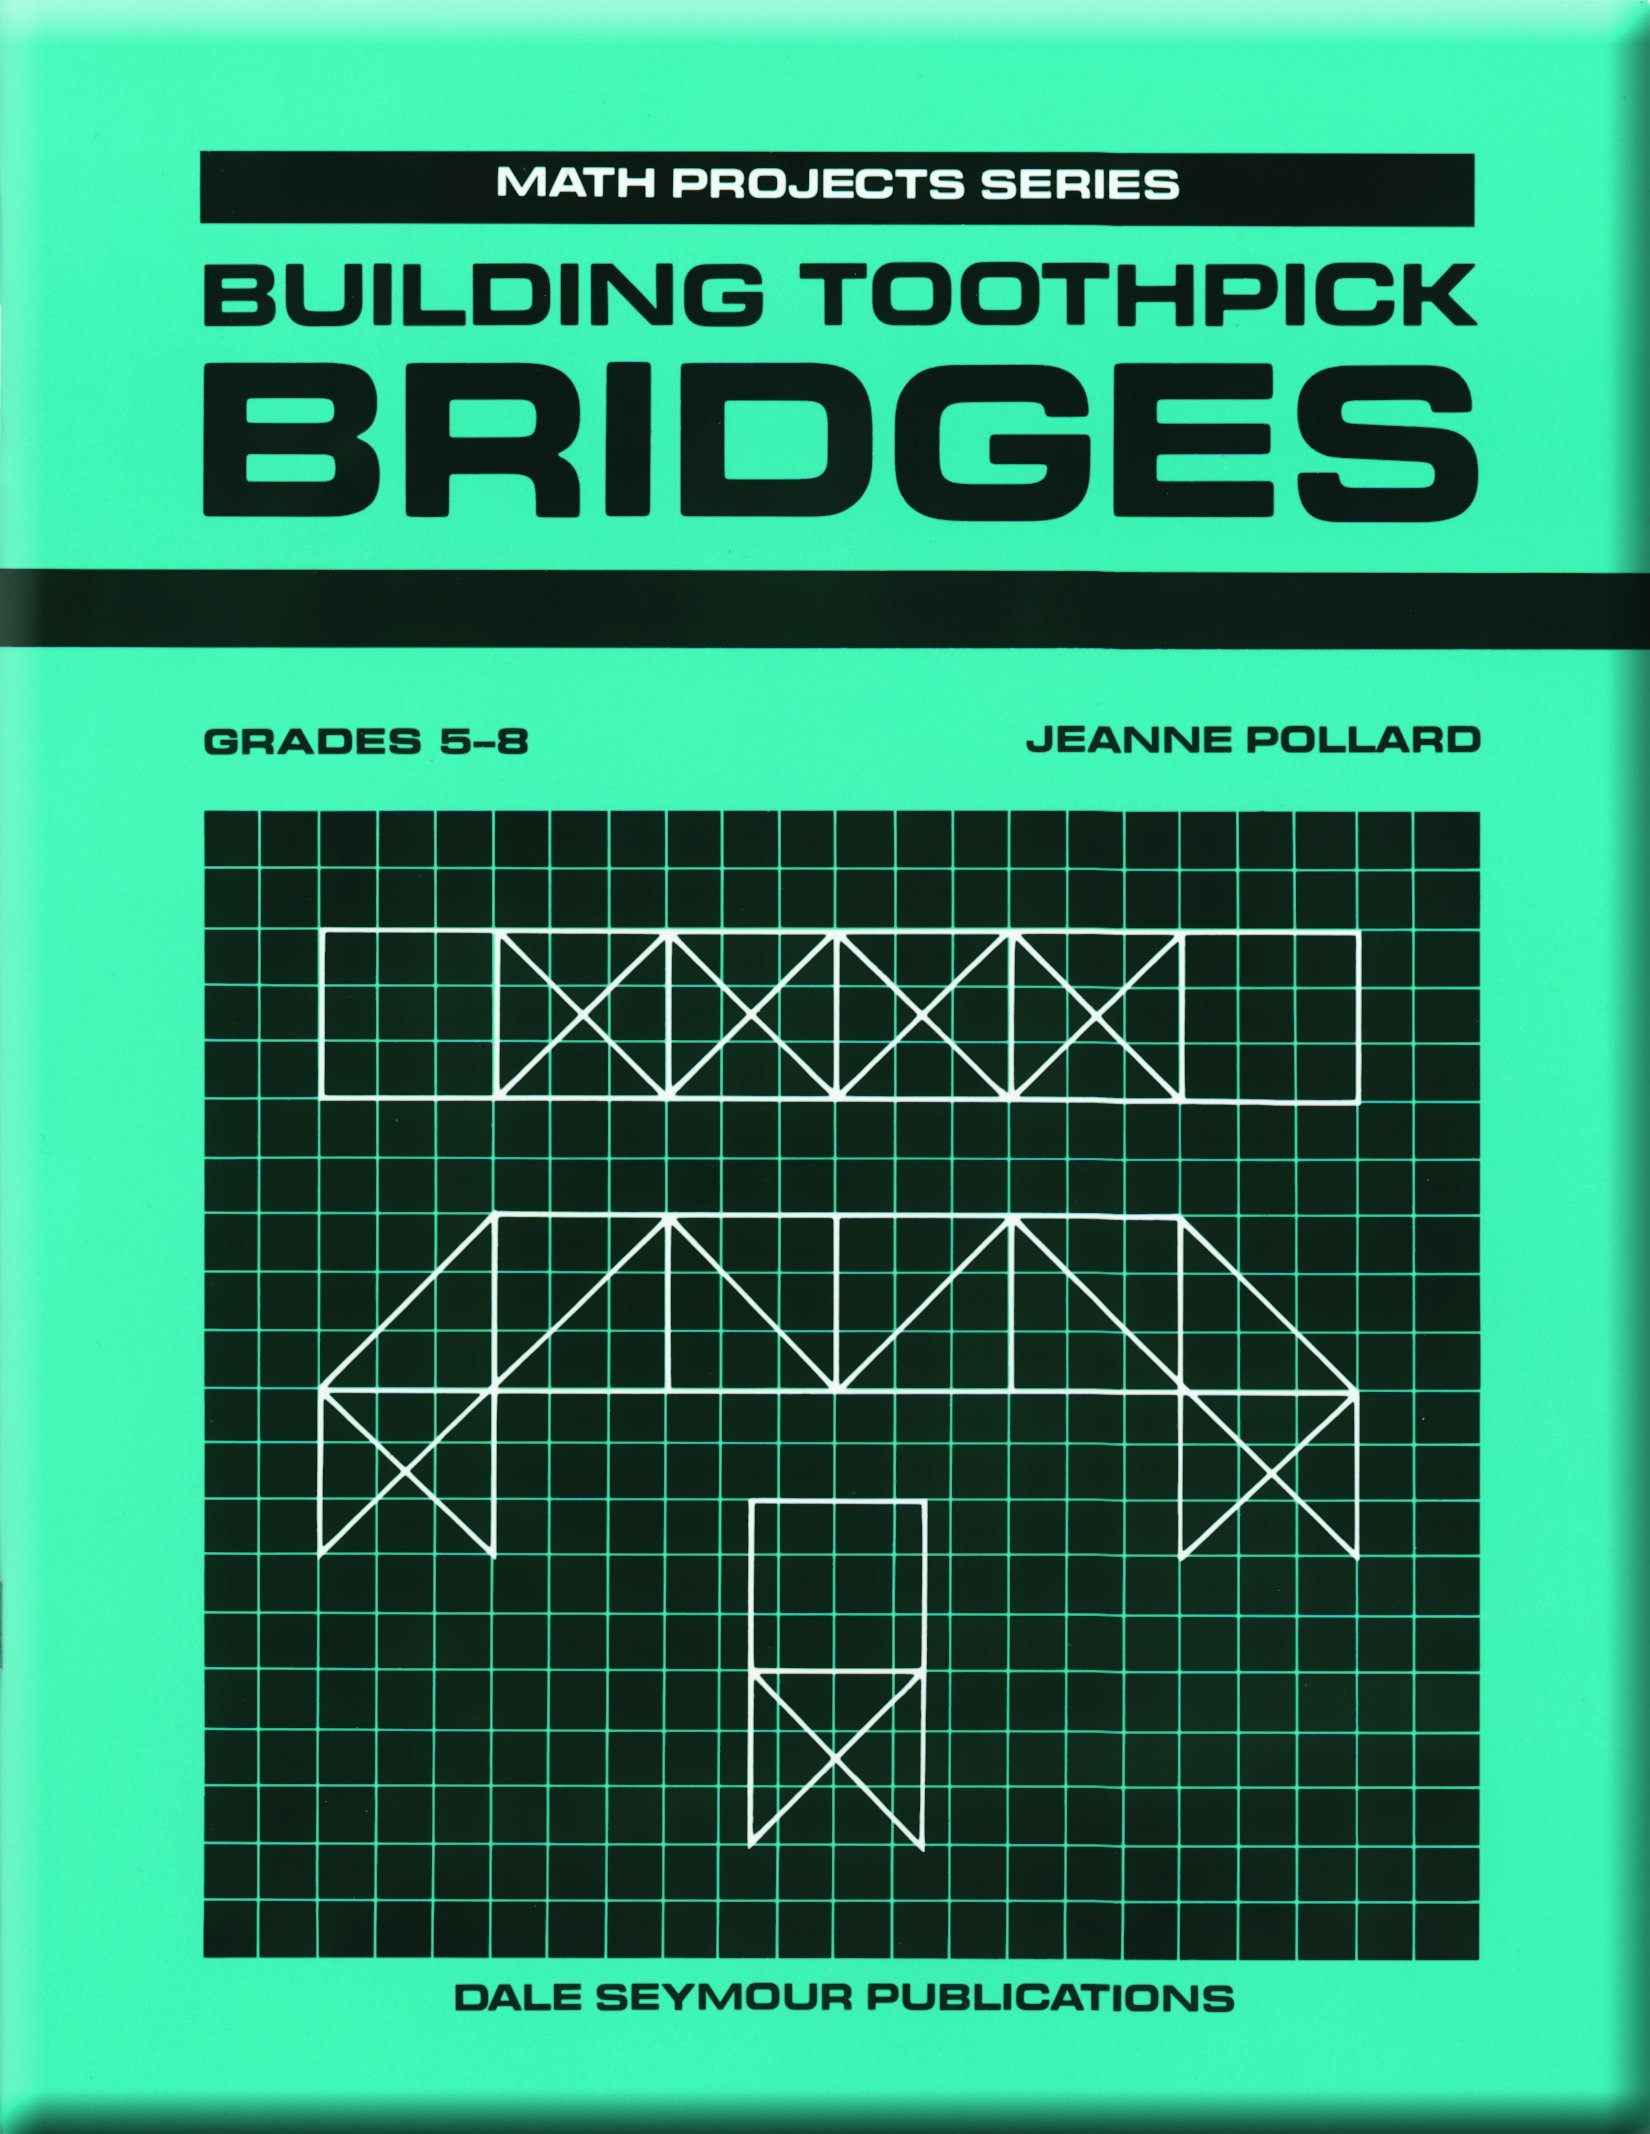 Building Toothpick Bridges Math Projects Grades 5 8 Dale Seymour